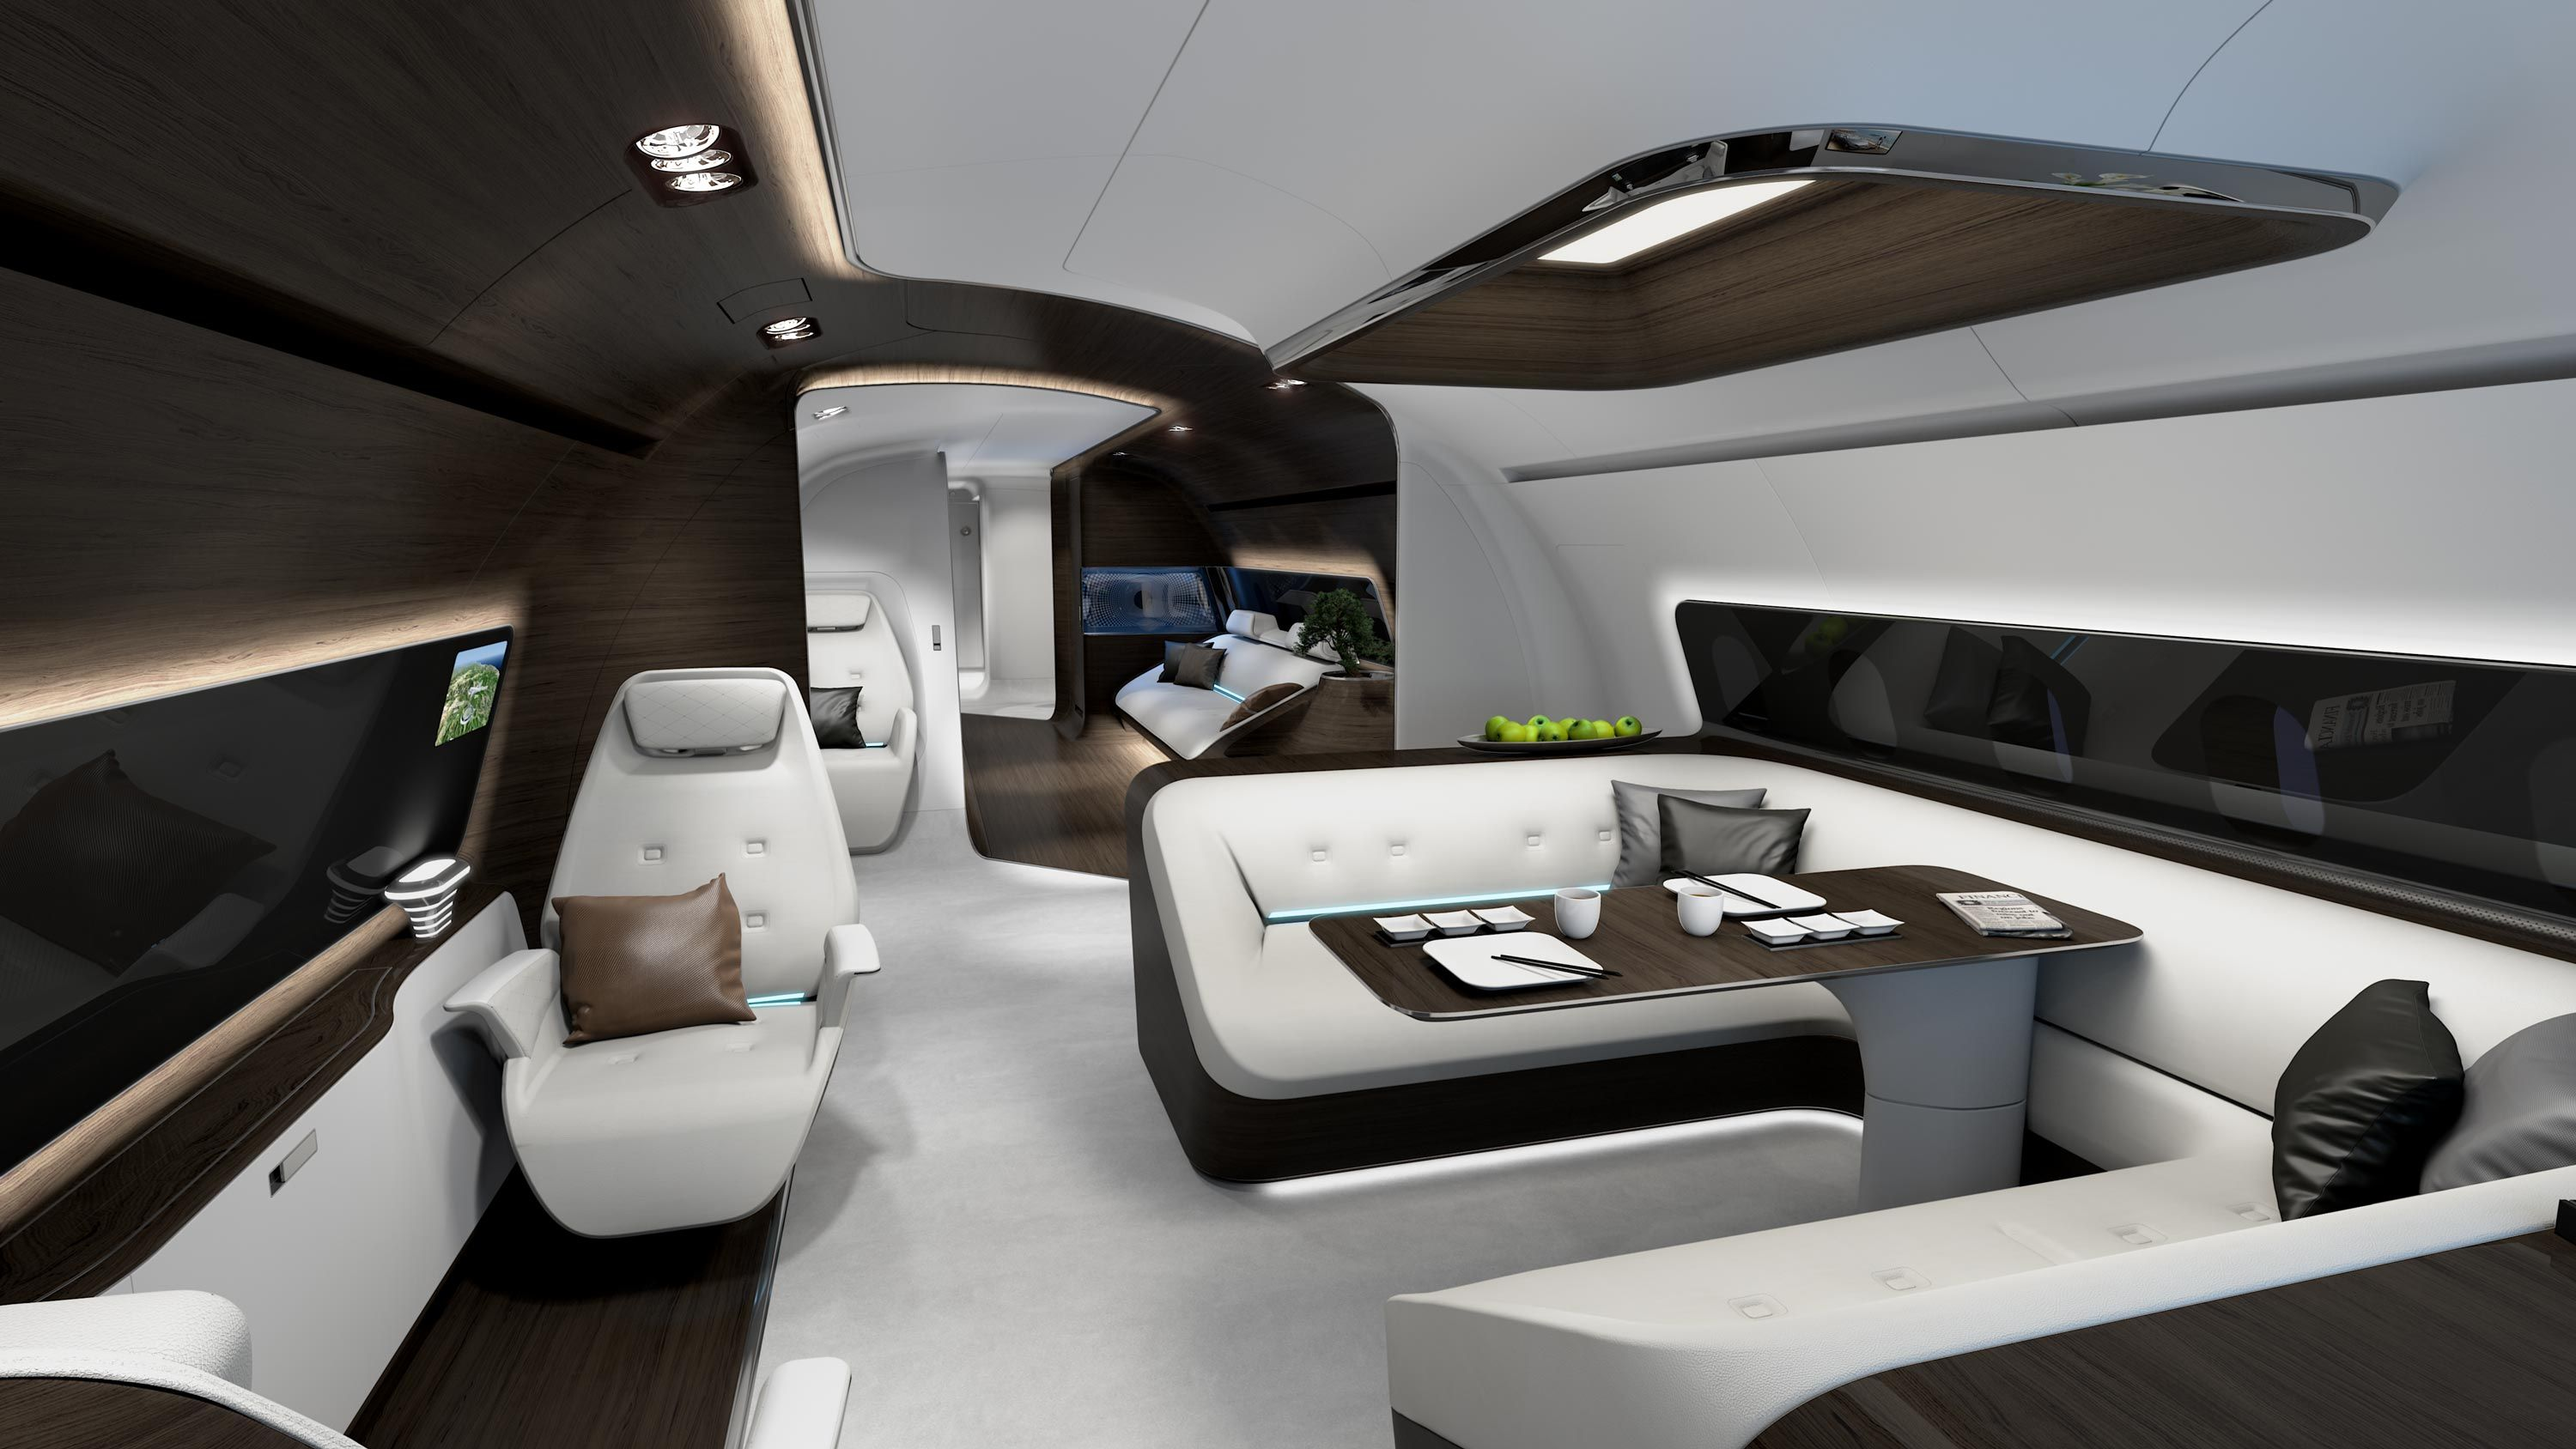 Gulfstream g650 interior bedroom mercedes goes in the air for the modern jetsetters  private jets